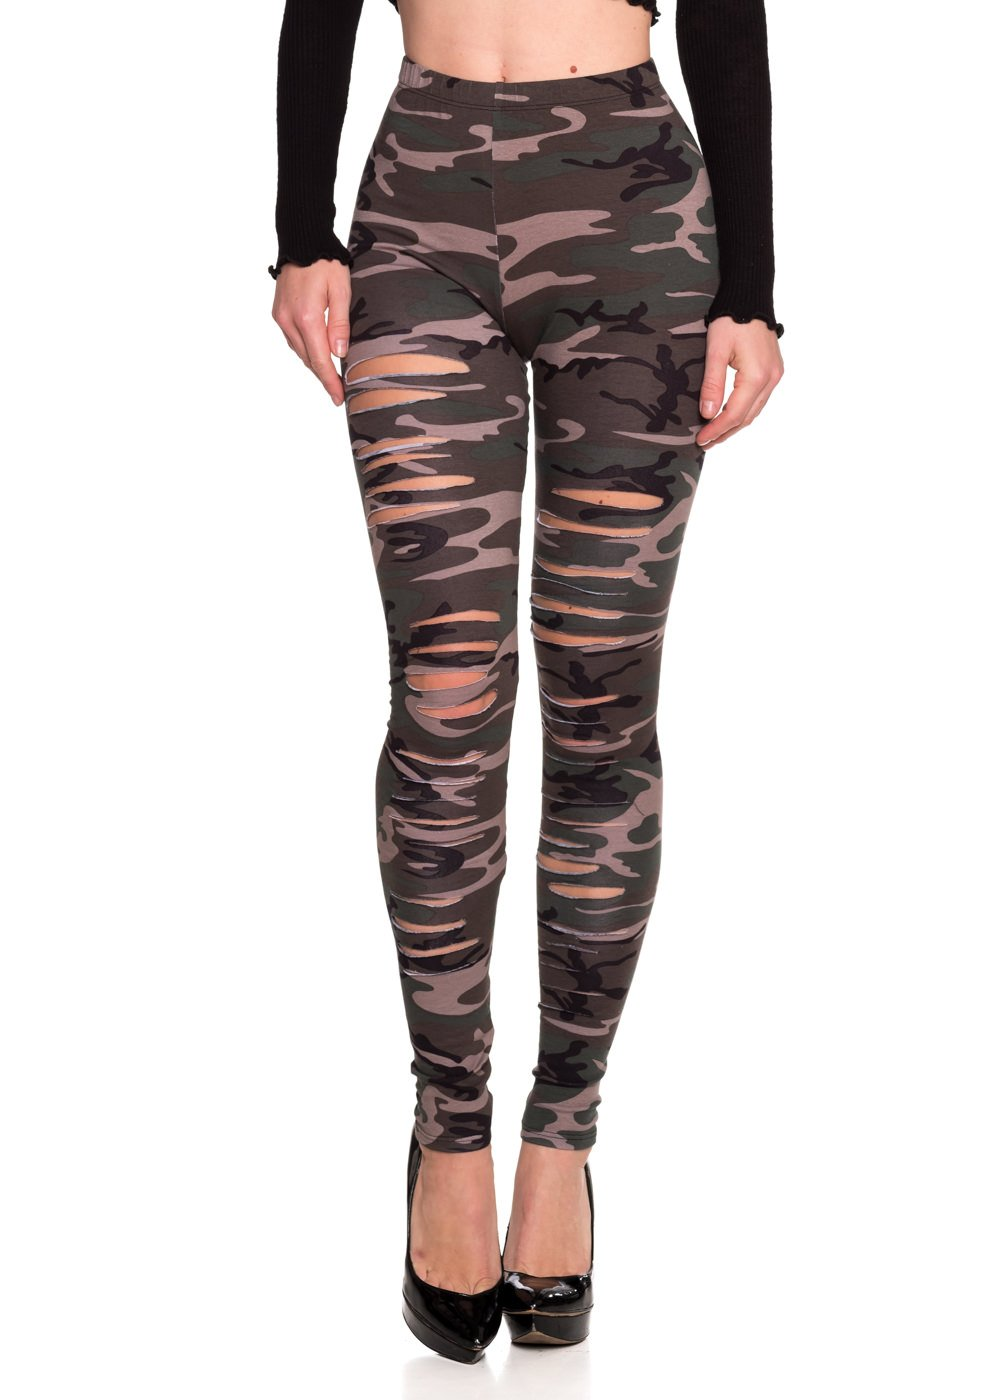 Women's J2 Love Ripped Cotton Legging, Large, Camouflage